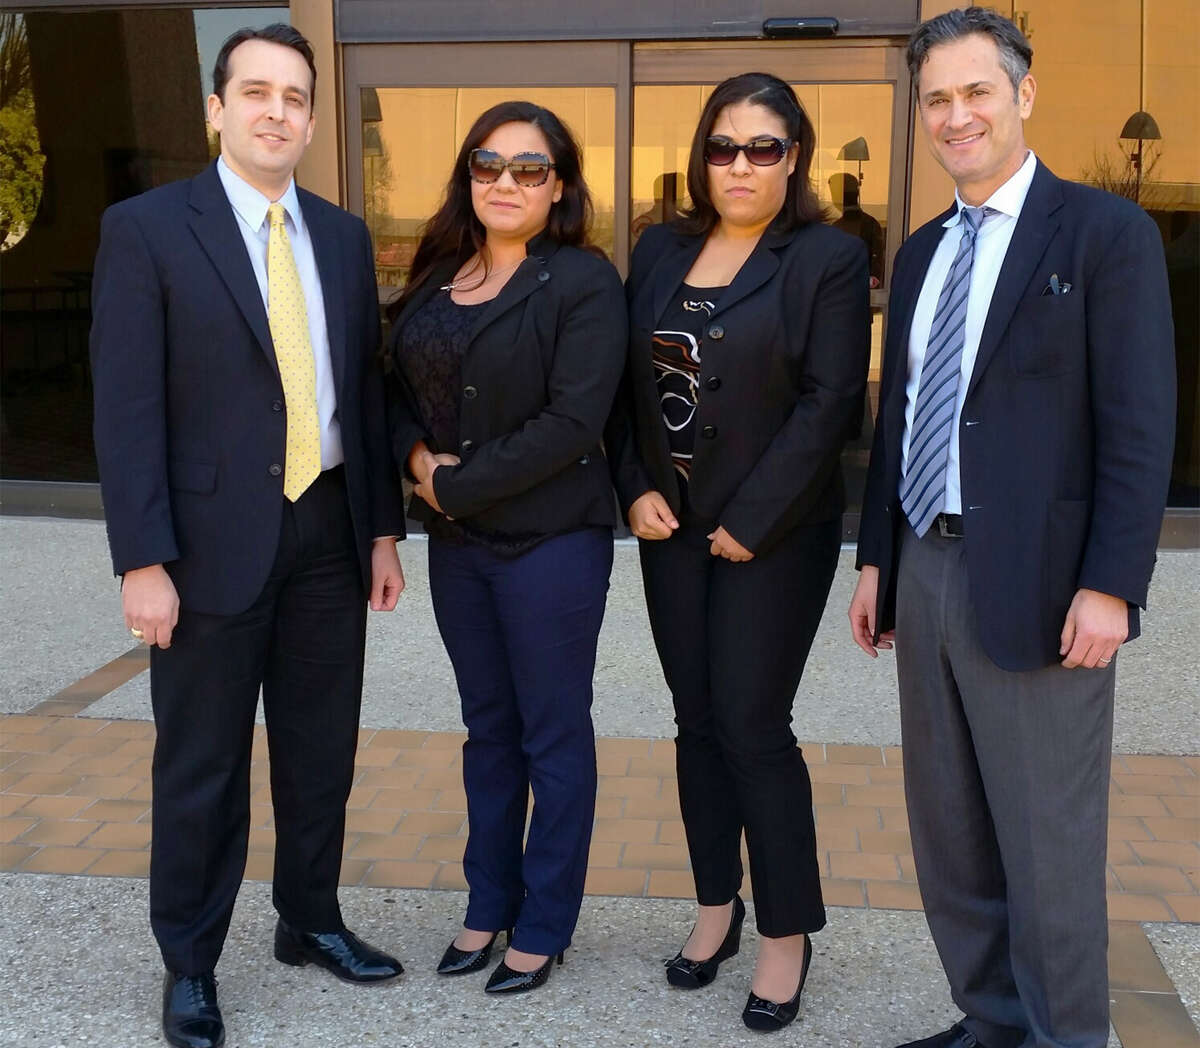 From left, lawyer Rick Prieto, former exotic dancers Alexis Alex and Nicolette Prieto, and attorney Robert Debes, stand outside San Antonio's federal court after winning a wage lawsuit against Tiffany's Cabaret. Picture taken Thursday, March 12, 2015.